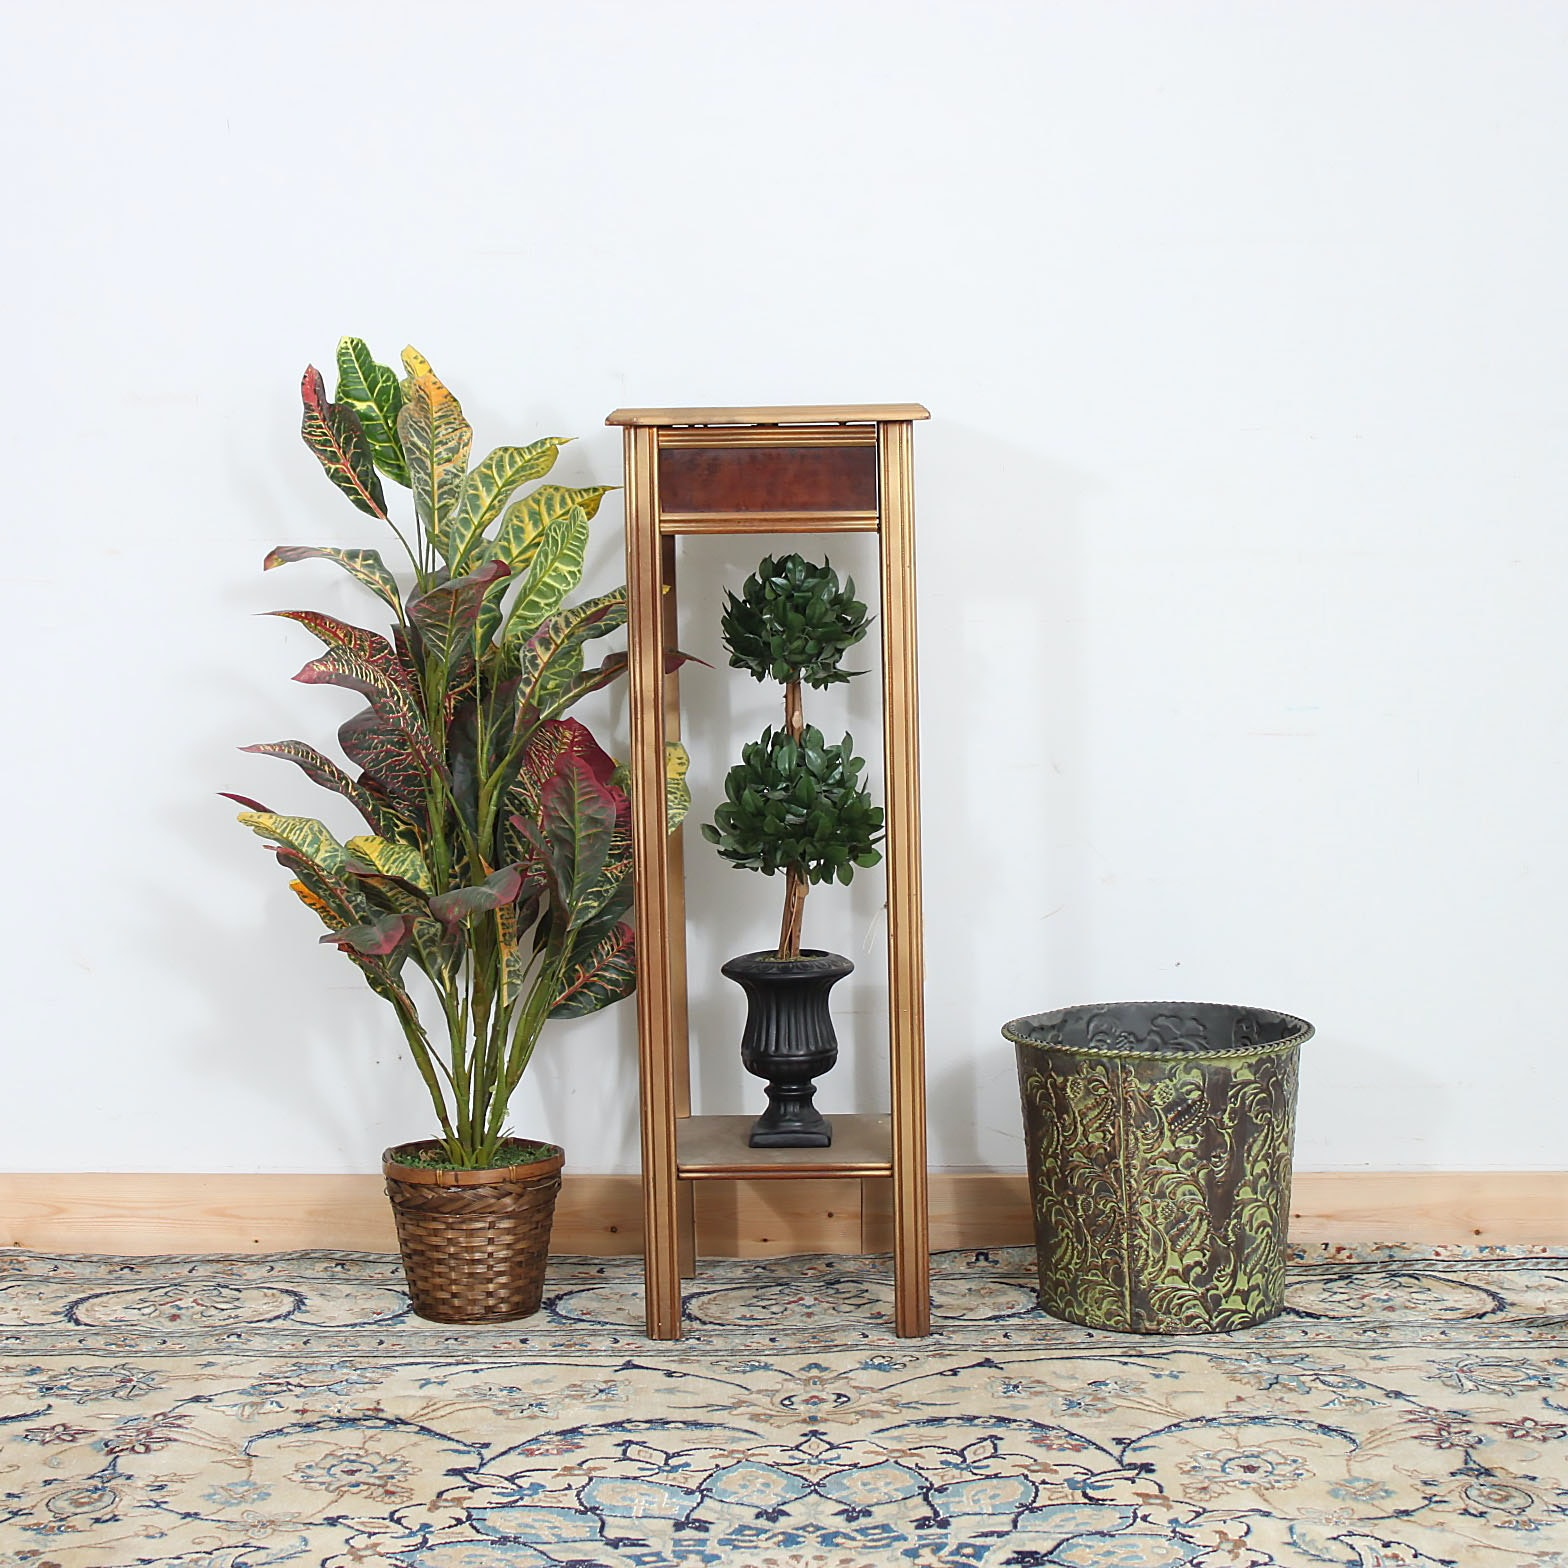 Contemporary Plant Stand with Assortment of Artificial Plants